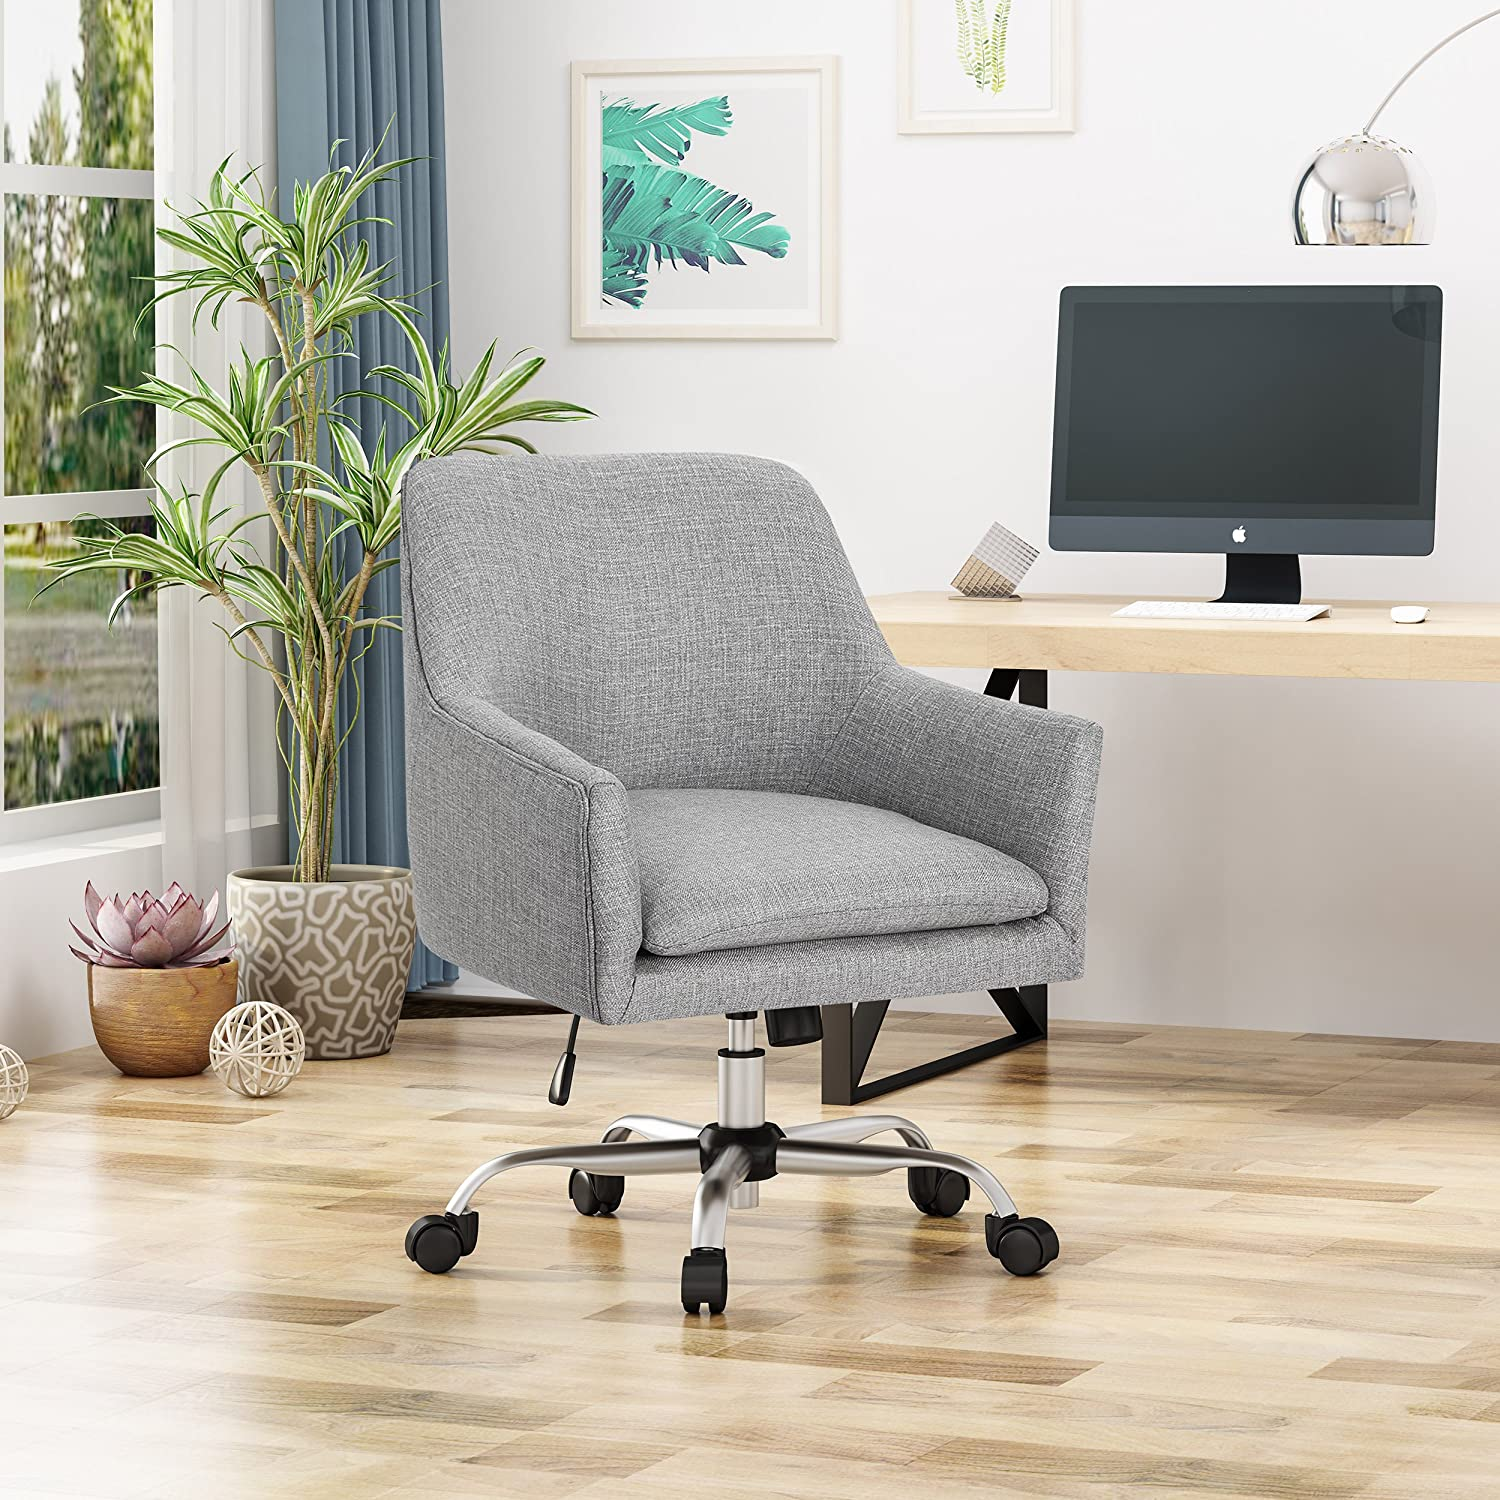 Christopher Knight Home Morgan Home Office Chair, Gray